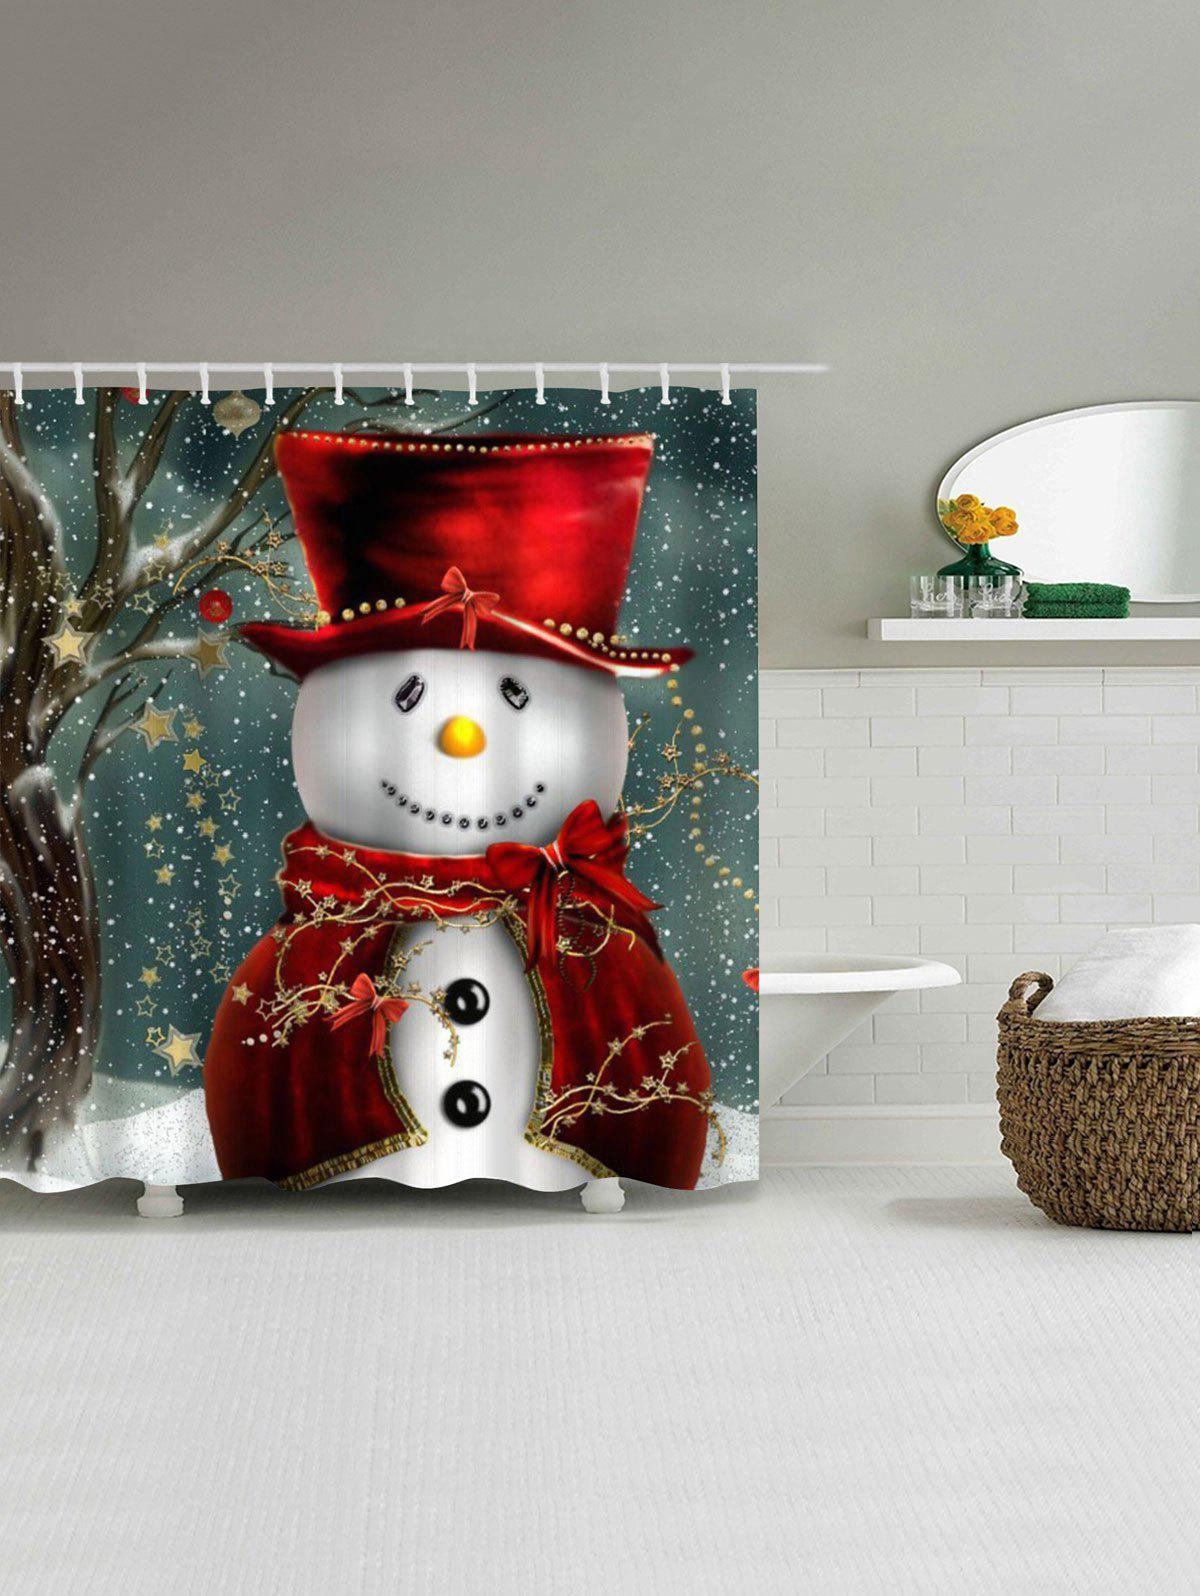 Christmas Snowman Bathroom Waterproof Shower Curtain waterproof christmas snowman pine pattern shower curtain